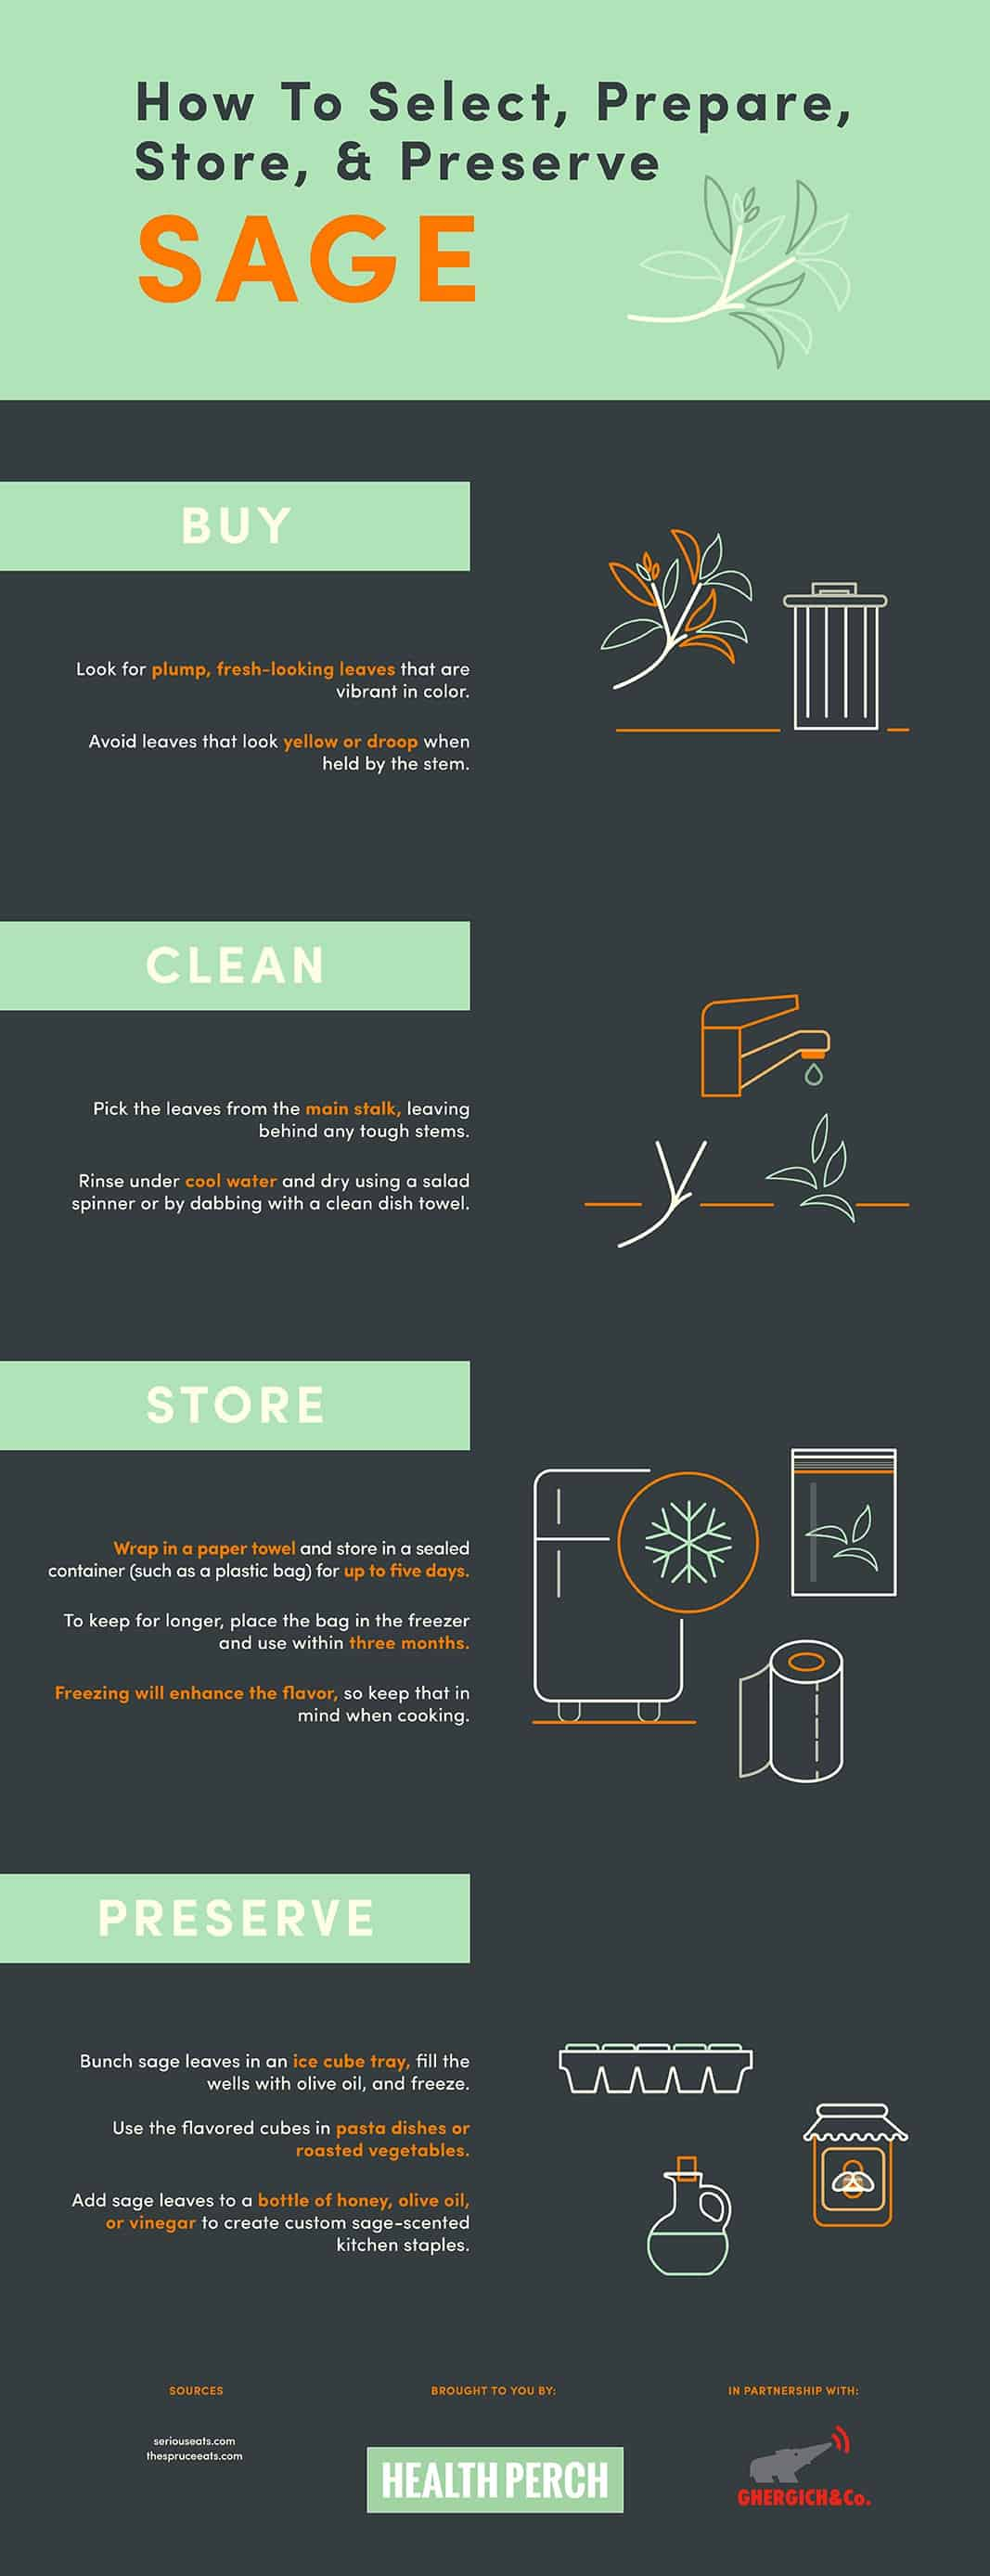 How to select, prepare, store and preserve Sage [Infographic]   ecogreenlove